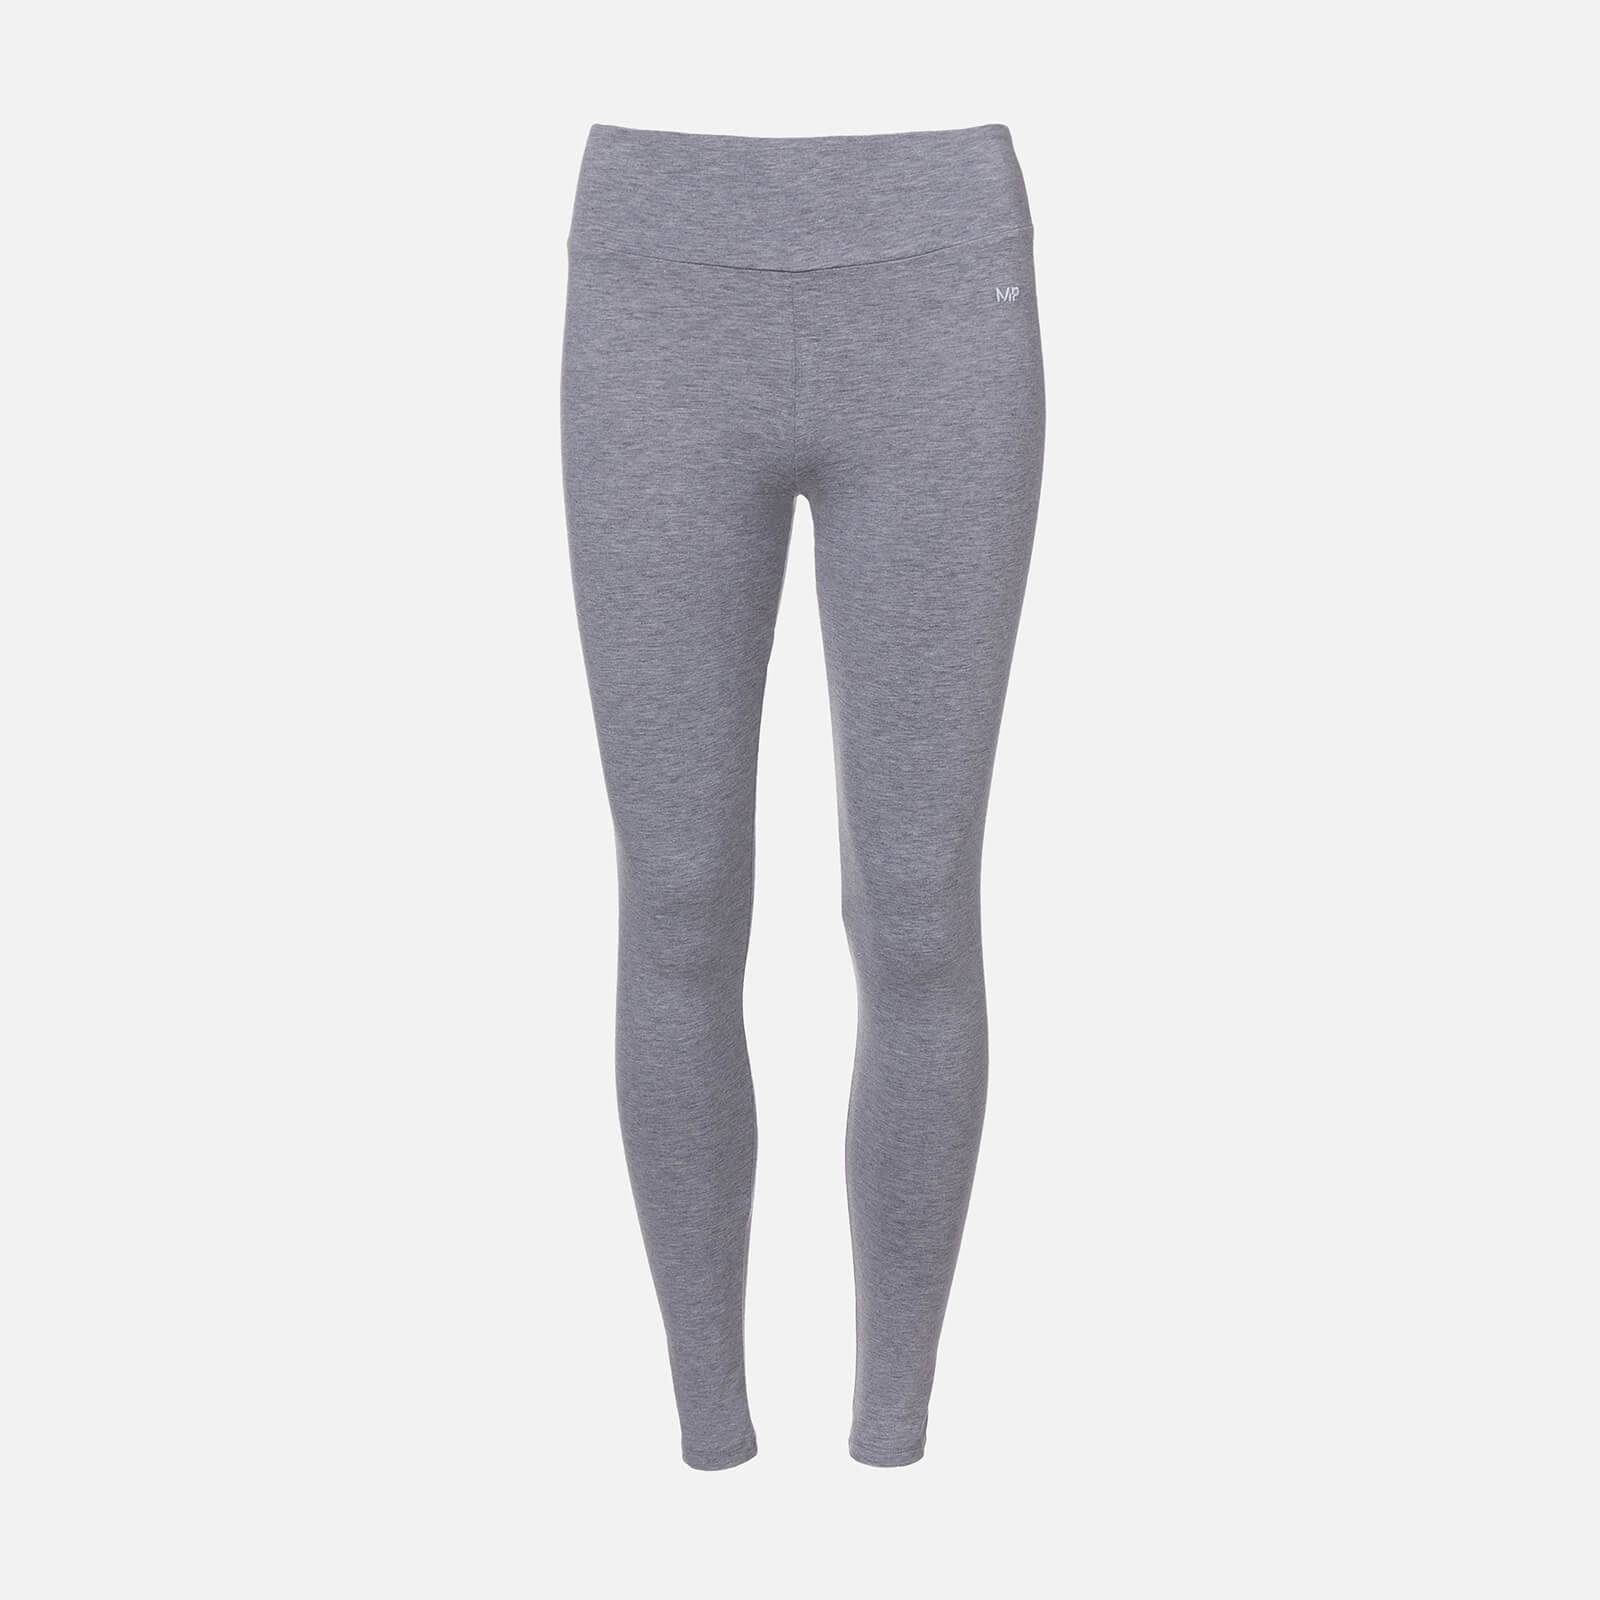 Myprotein MP Essentials Leggings - Grey Marl - M